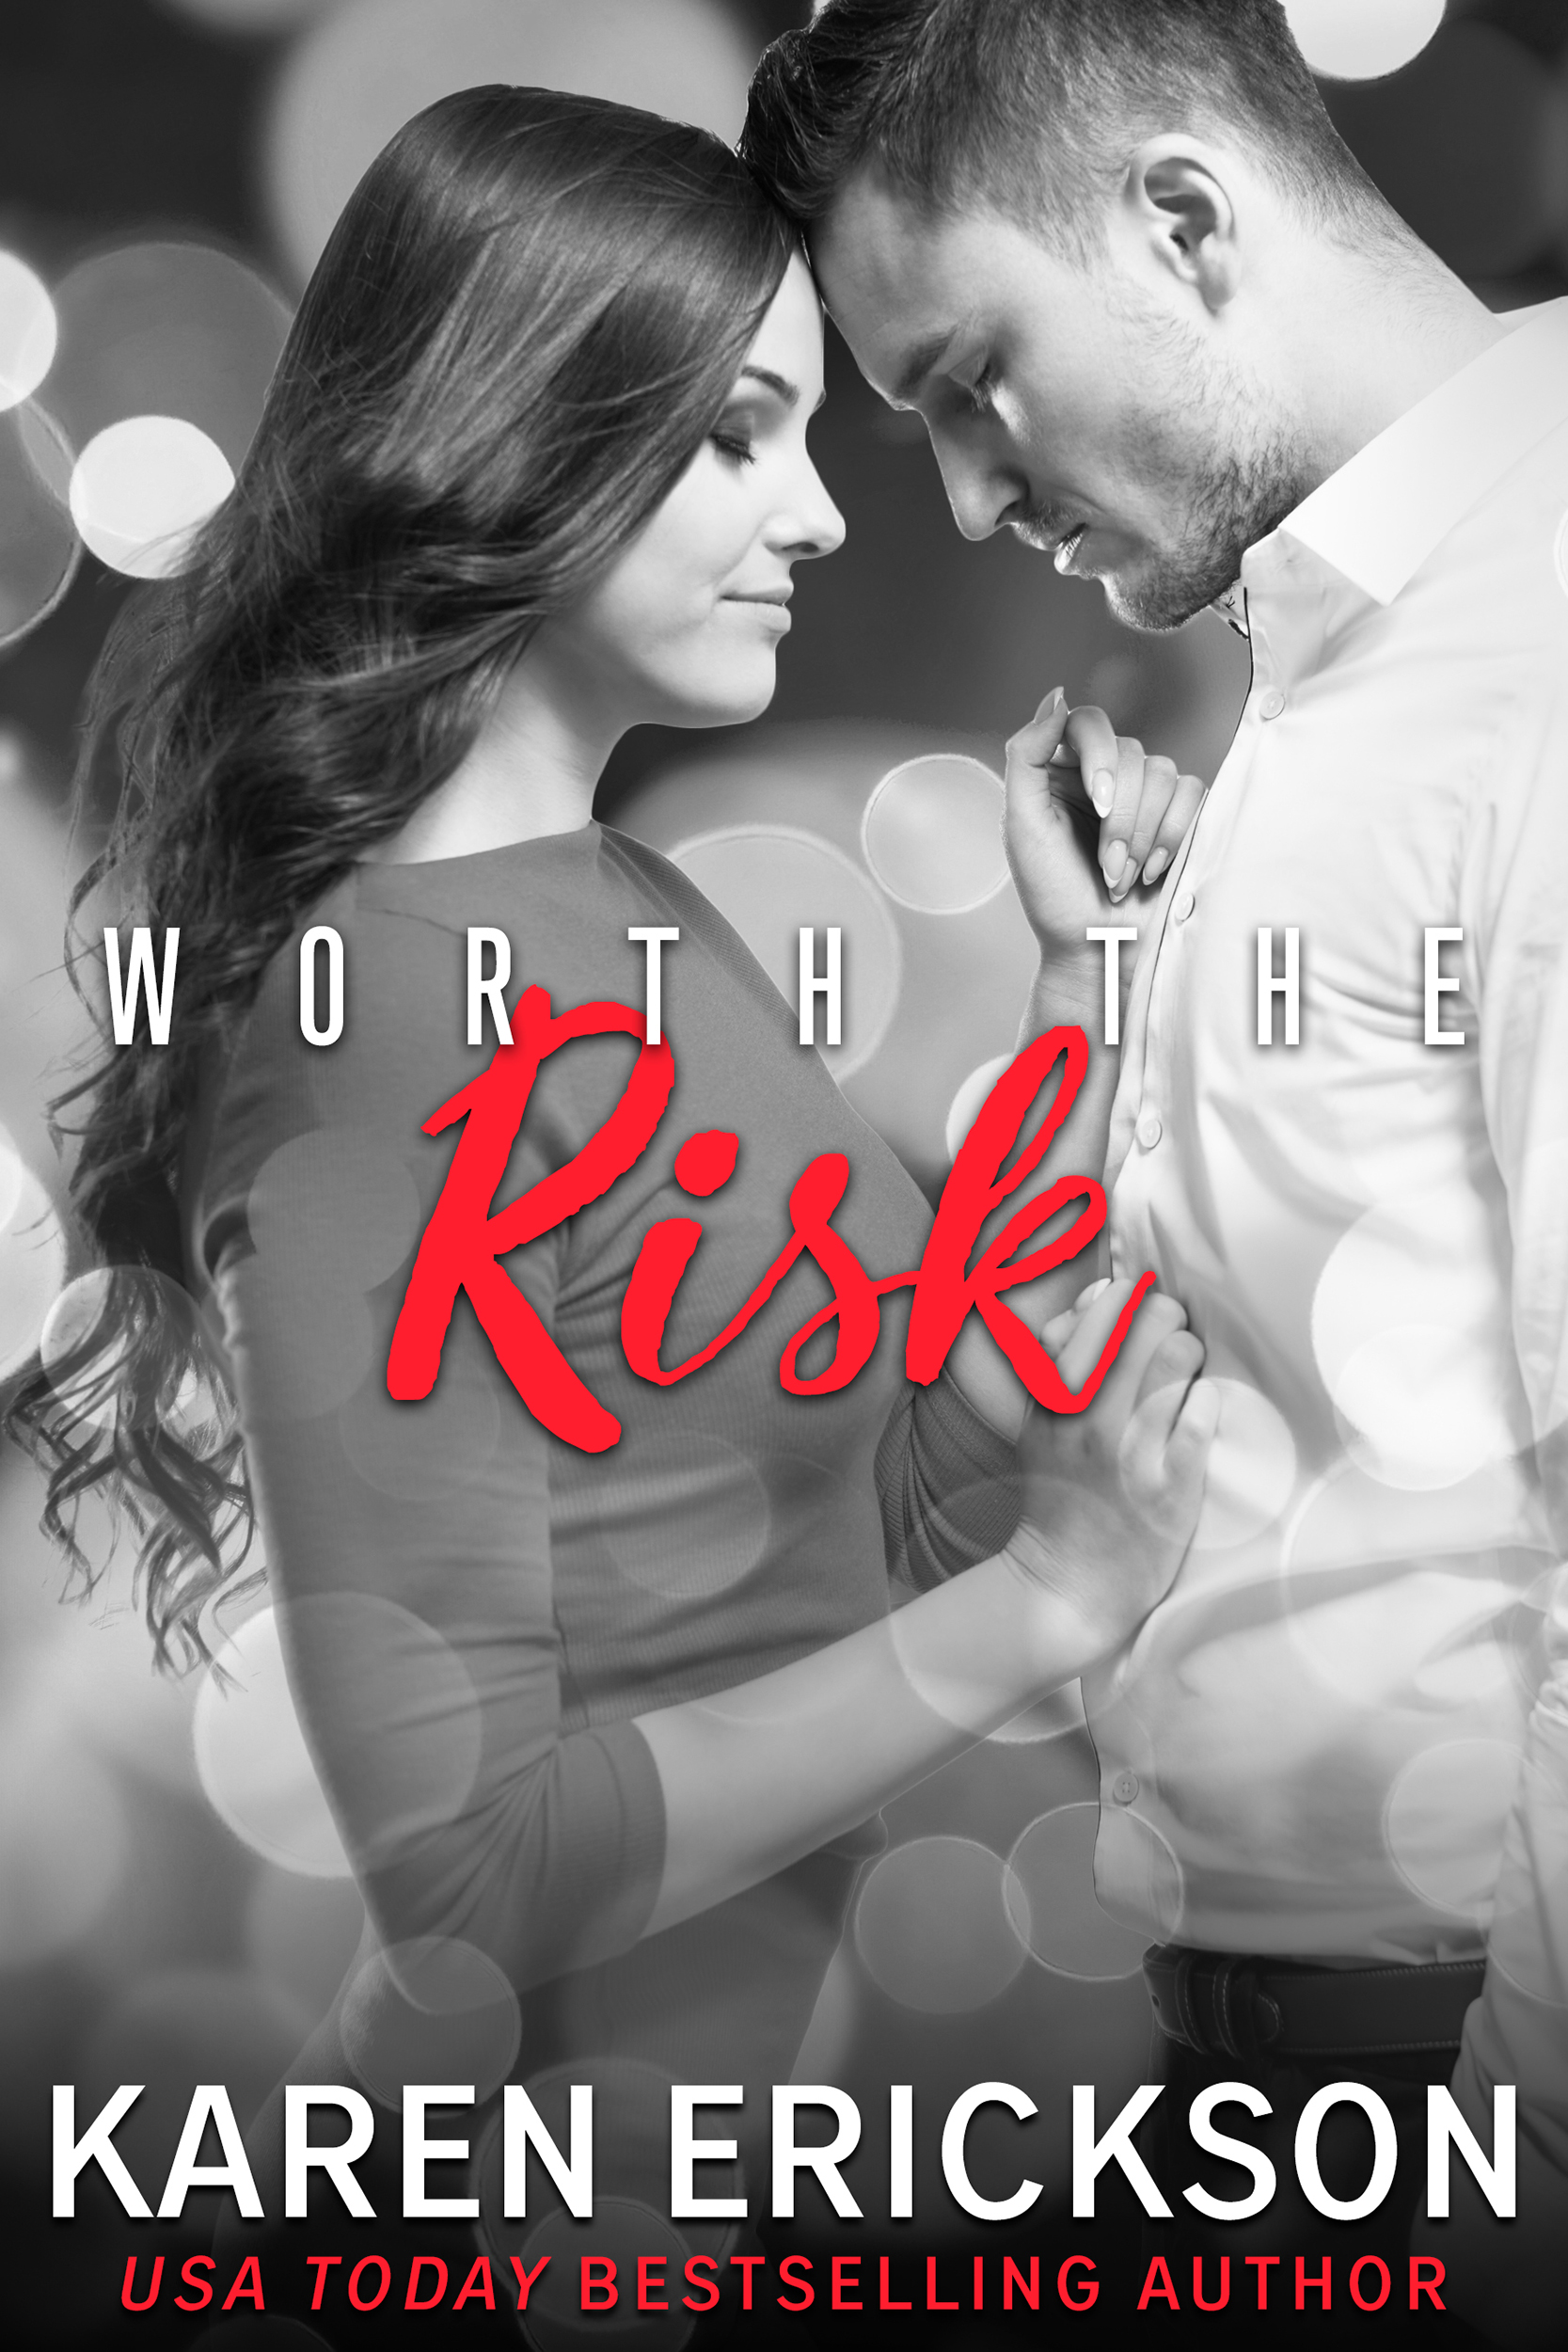 Worth The Risk - Worth It, Book 2Amazon •B&N •iBooks •Kobo •GooglePlayIf you can't take the risk, you'll have to settle for ordinary.Hunter Worth believes in walking his talk. As vice president and head of brand marketing for Worth Luxury Goods, he knows how to recognize the best when sees it. And right now, his sights are set on the most gorgeous woman on his marketing team.Gracie Hayes needs her job at Worth. Hunter's on-point seduction skills are not going to compromise everything she's worked for. After surviving a rough childhood, she also knows what she's seeing—and her boss may be charming, but he's also ruthless.Her temptation grows with every flirtation, every stolen kiss—and she can't deny that the sex is scorching. But that's all it will ever be, no matter what he promises. Gracie is too strong, too independent to fall for him.He didn't count on being the one to fall hard.Amazon •B&N •iBooks •Kobo •GooglePlay